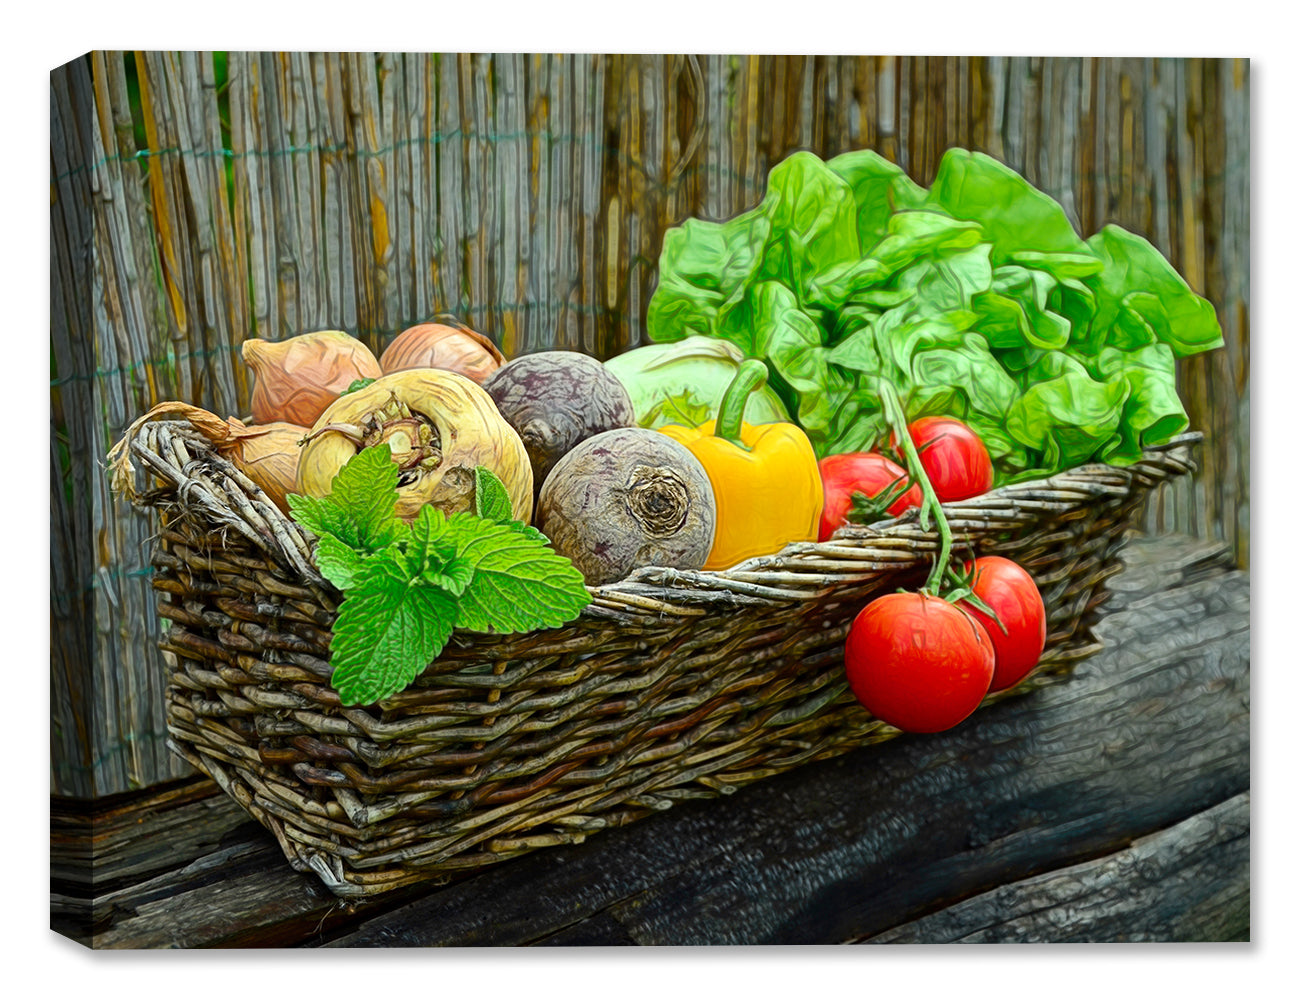 Vegetables in a Basket -Still Life Painting